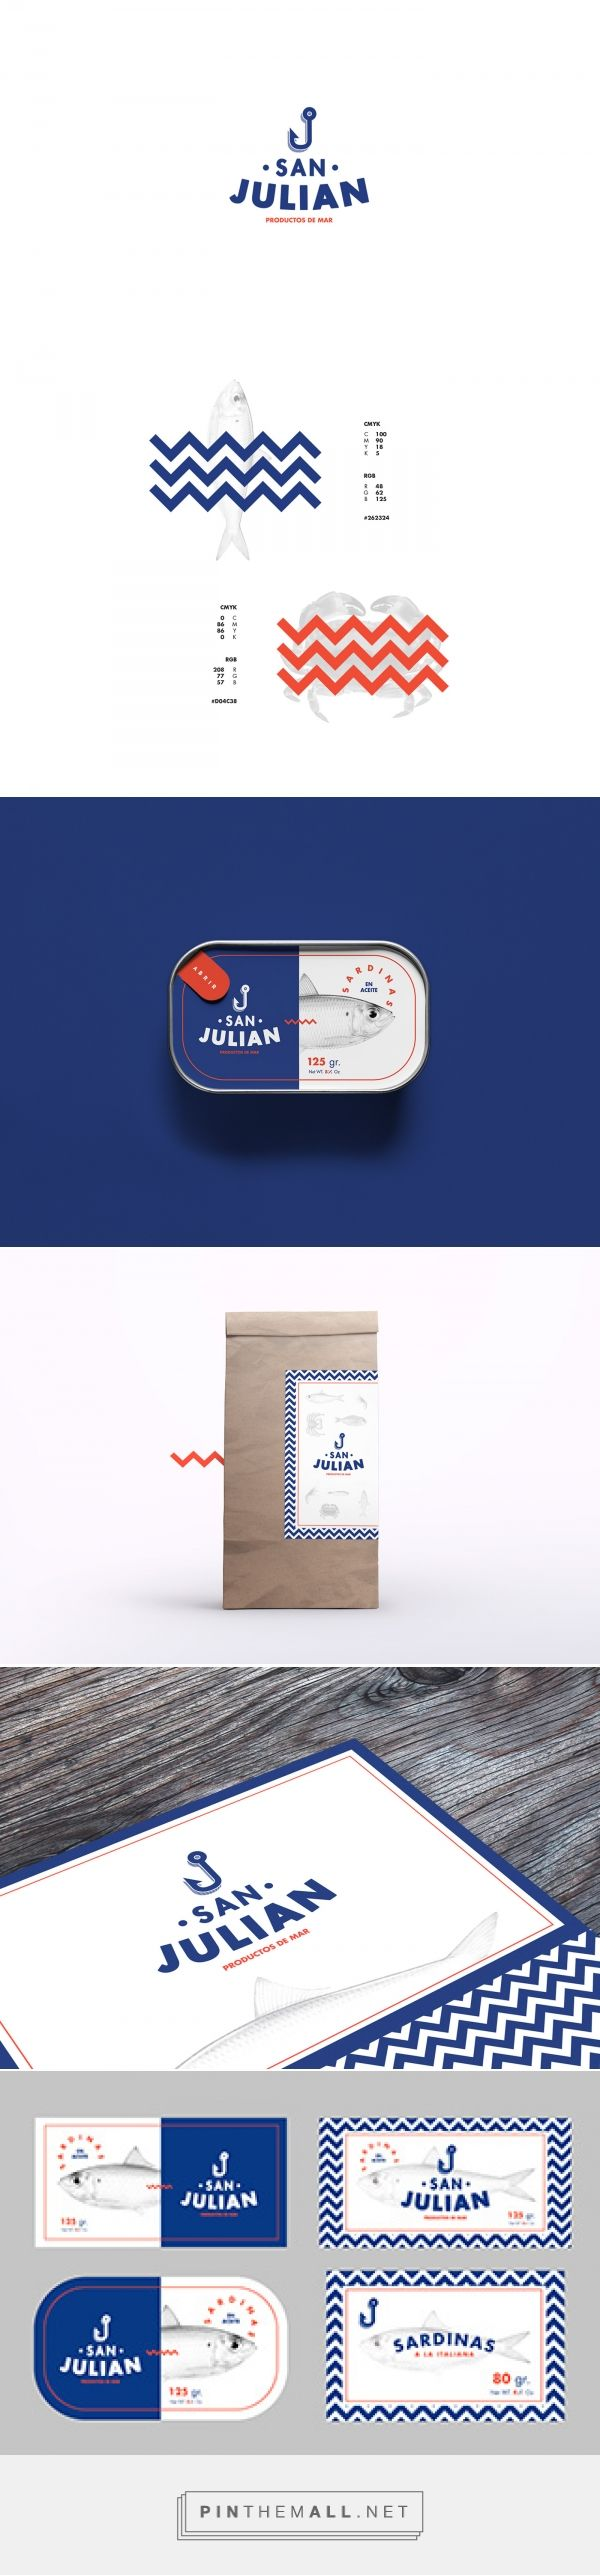 San Julian on Behance by Pablo Martínez Díaz. Buenos Aires, Argentina curated by Packaging Diva PD.  Diseño de marca y packaging para pescadería San Julian. Art direction, graphic design, branding, packaging.